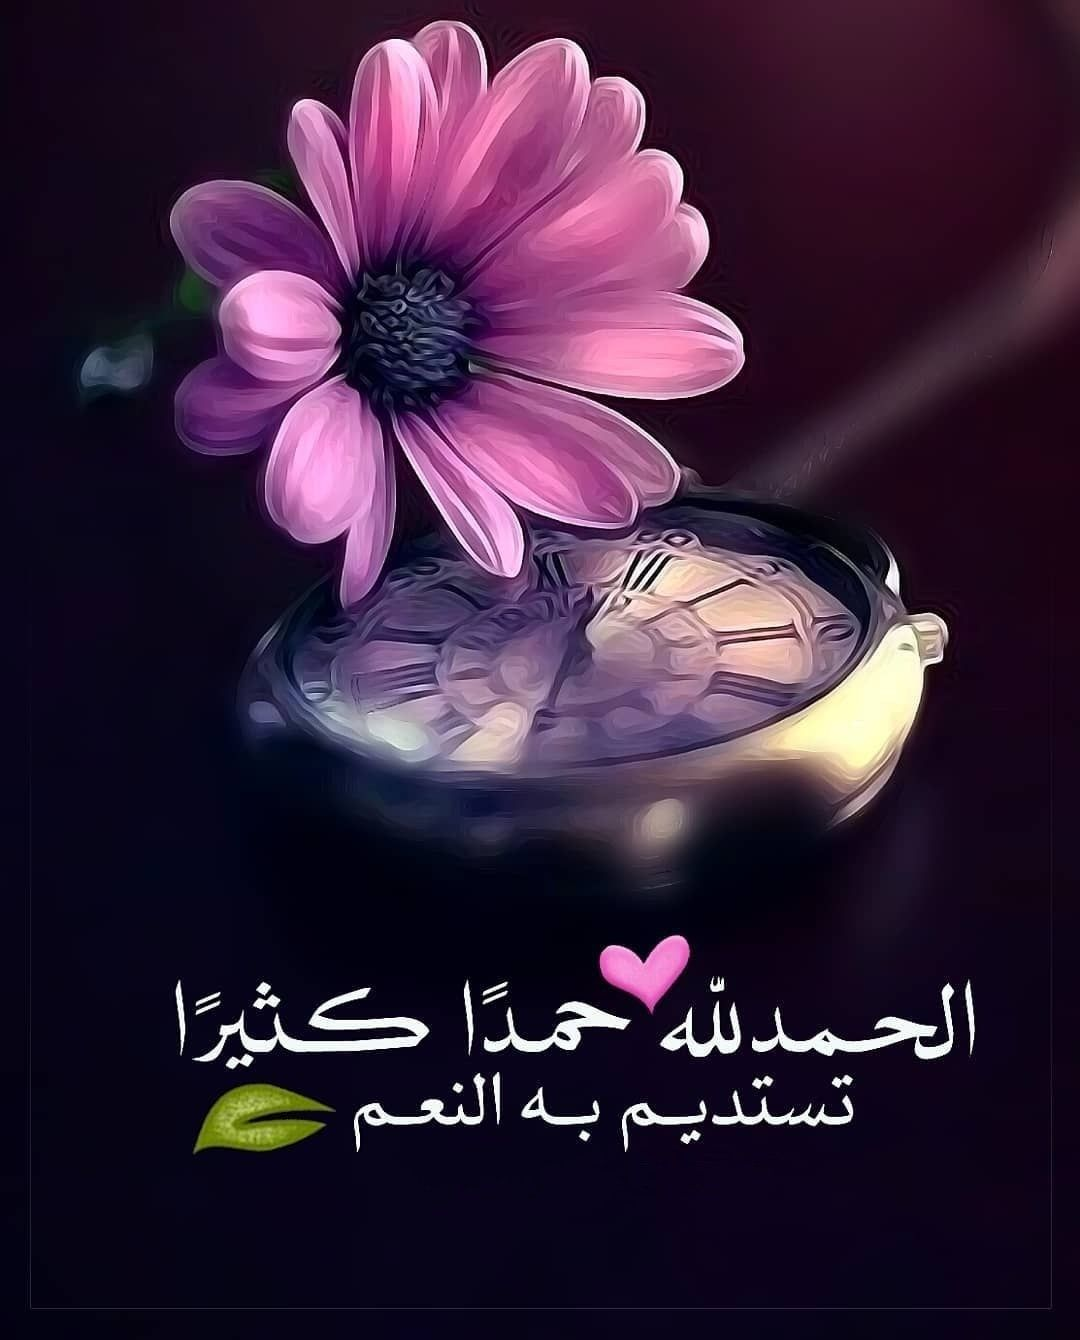 Pin By Zahrat Afaf On الح م ــــد لله Islamic Quotes Wallpaper Islamic Love Quotes Raindrops And Roses